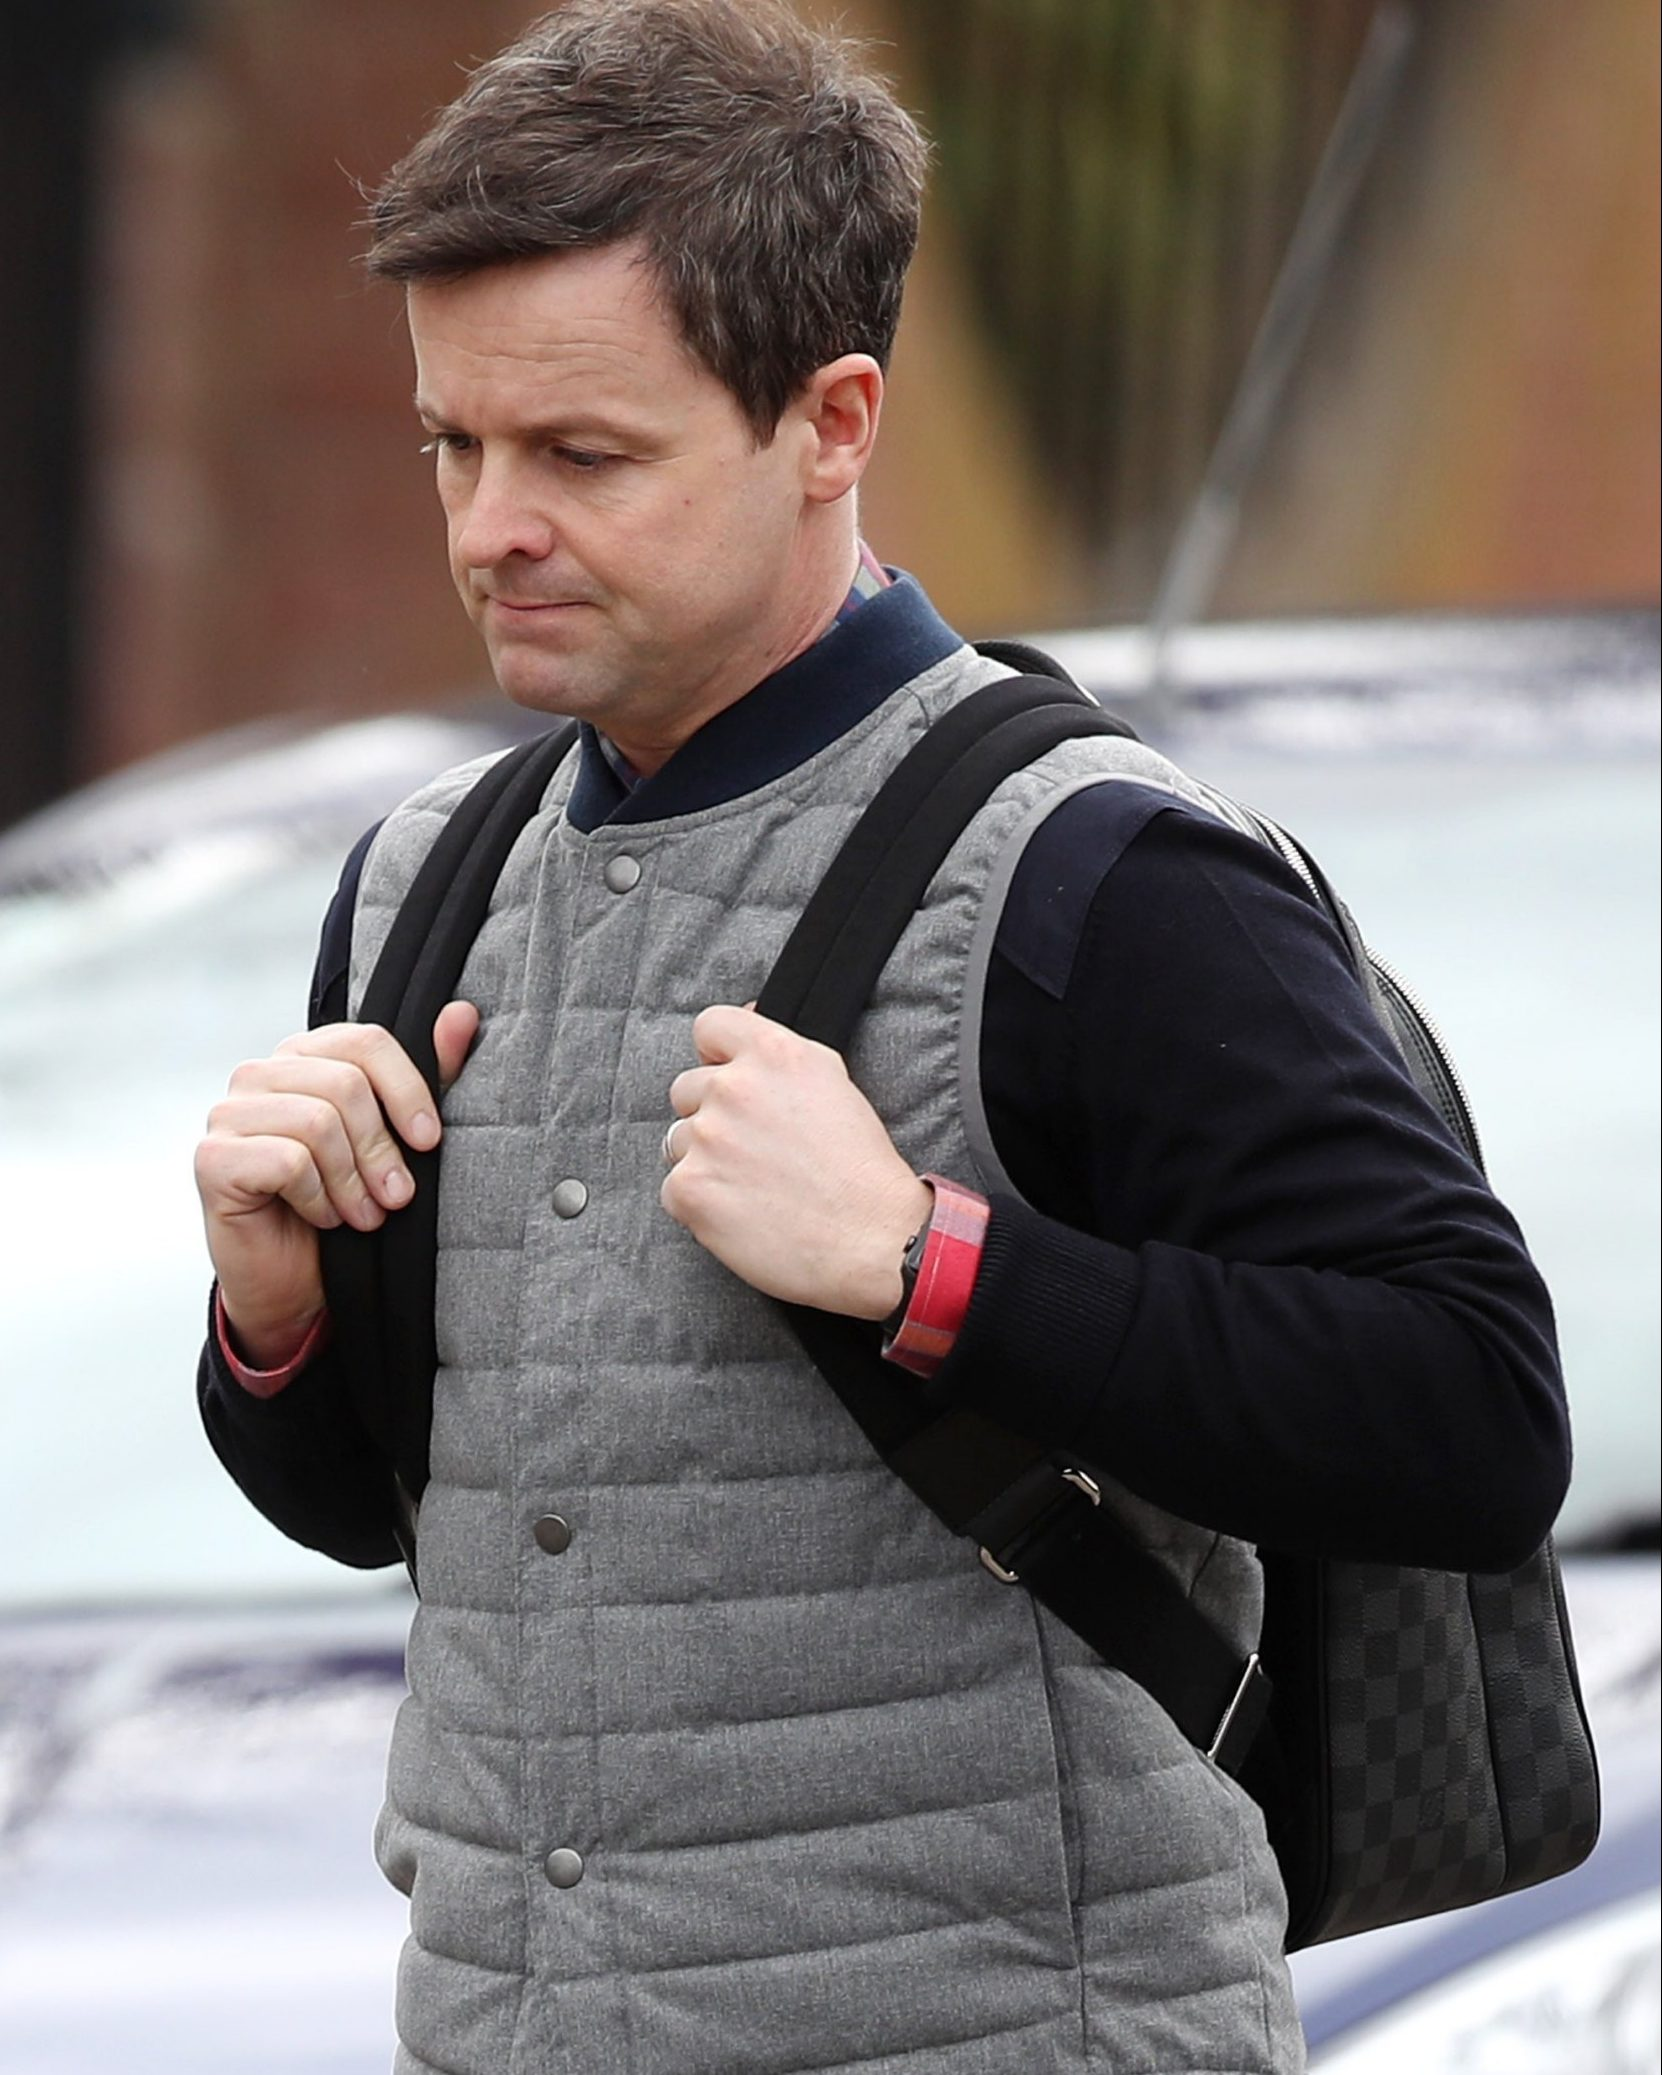 Picture Shows: Declan Donnelly March 20, 2018 * Min Web / Online Fee ?400 For Set * One half of Ant & Dec, Declan Donnelly and his wife Ali Astall are seen out and about in Chiswick in London, England, UK. Sources report Declan is devastated about recent events concerning his comedy partner Ant McPartlin. * Min Web / Online Fee ?400 For Set * Exclusive Worldwide Rights Pictures by : Flynet Pictures ? 2018 Tel : +44 (0)20 3551 5049 Email : info@flynetpictures.co.uk